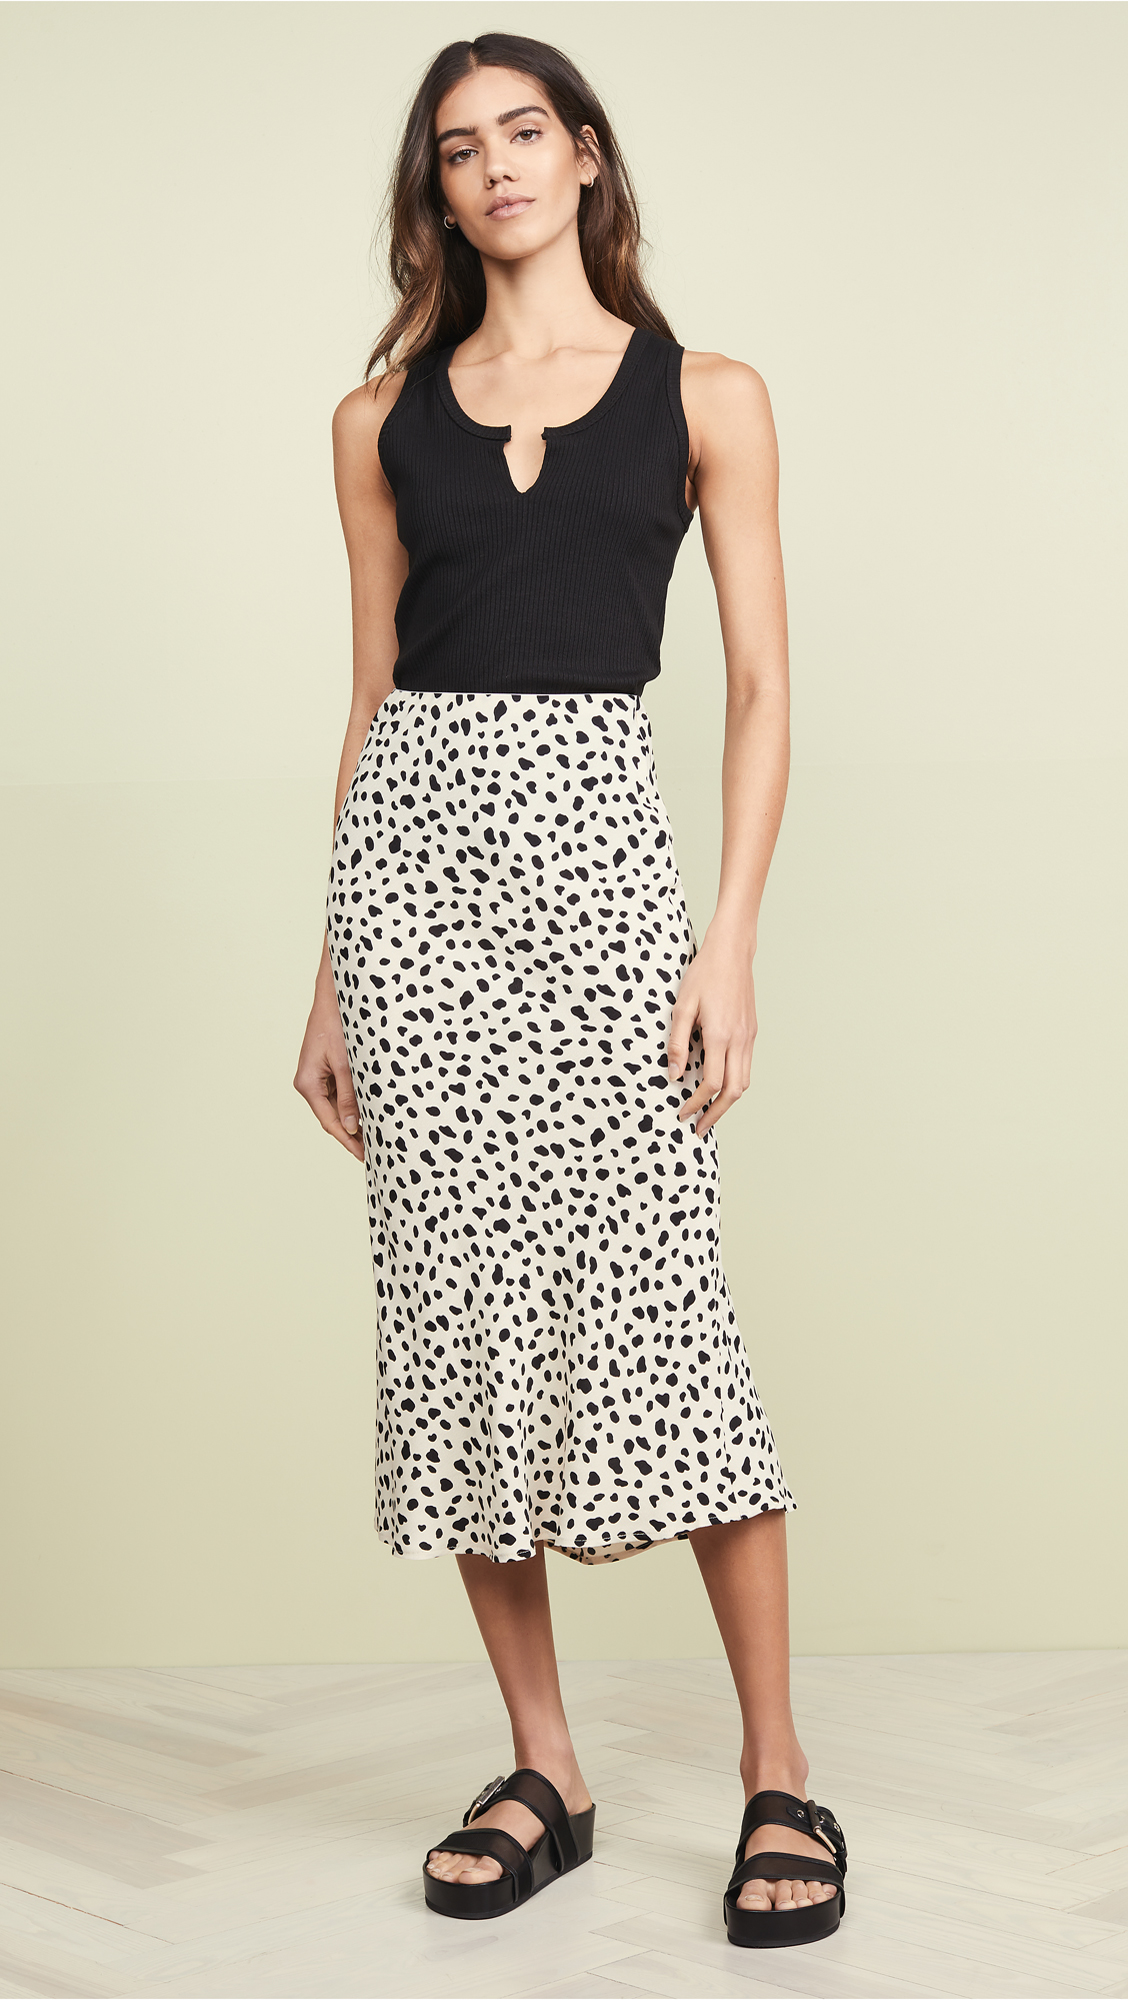 Leopard Print Skirt By Moon River